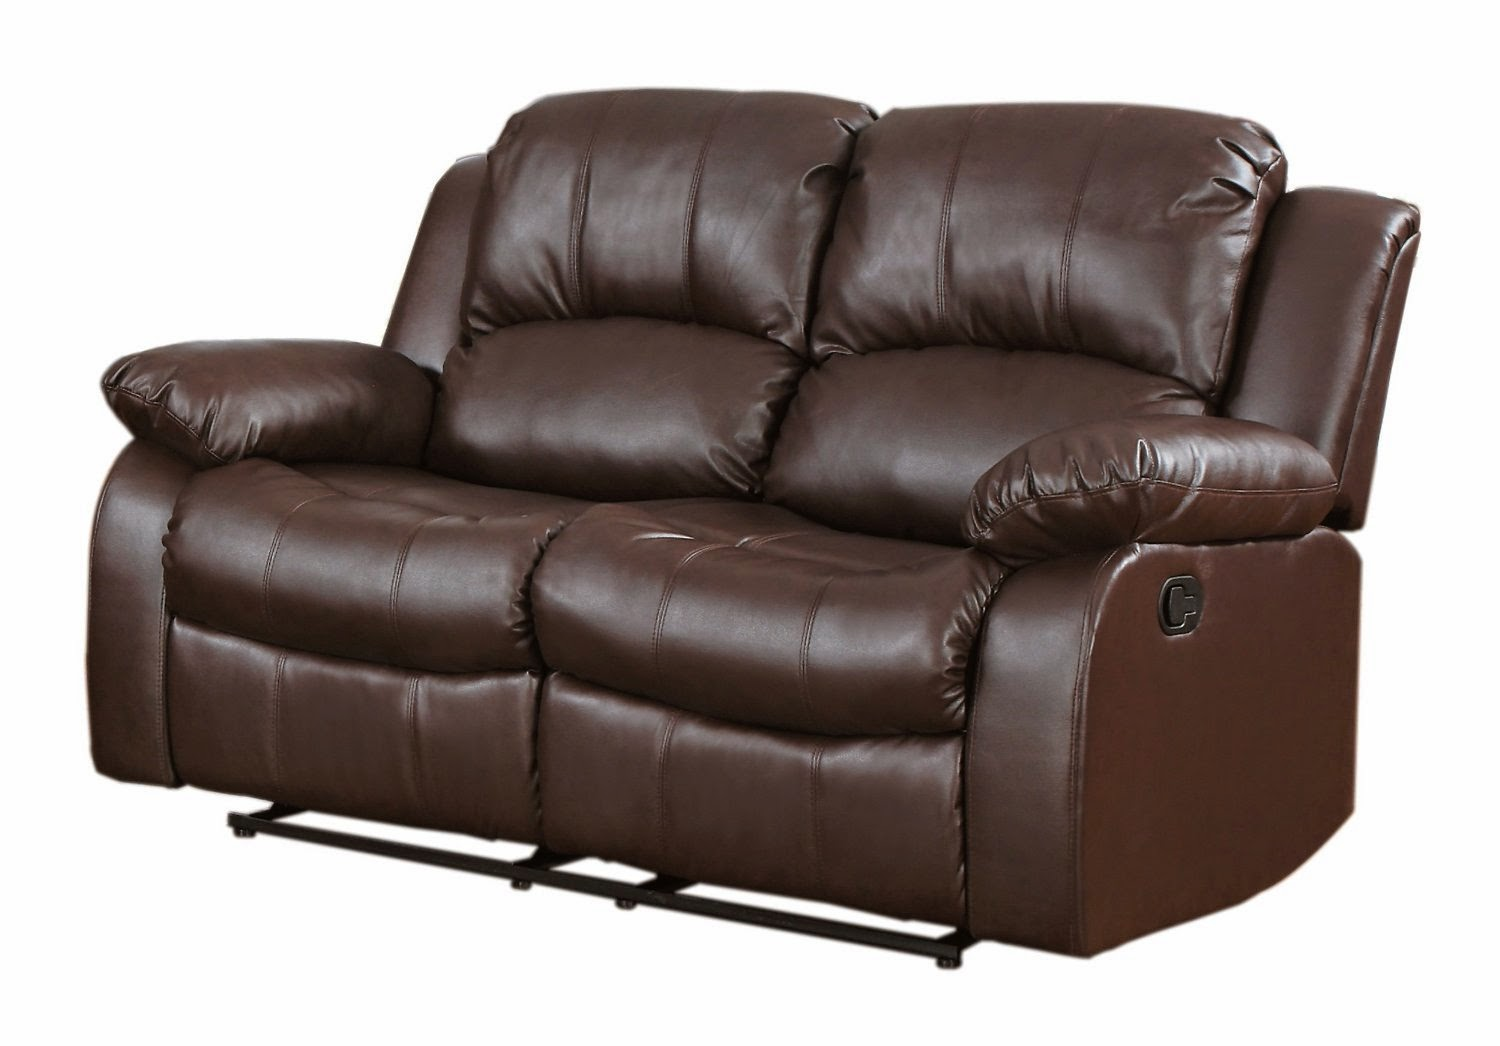 Where is the best place to buy recliner sofa 2 seater electric recliner leather sofa Leather reclining loveseat